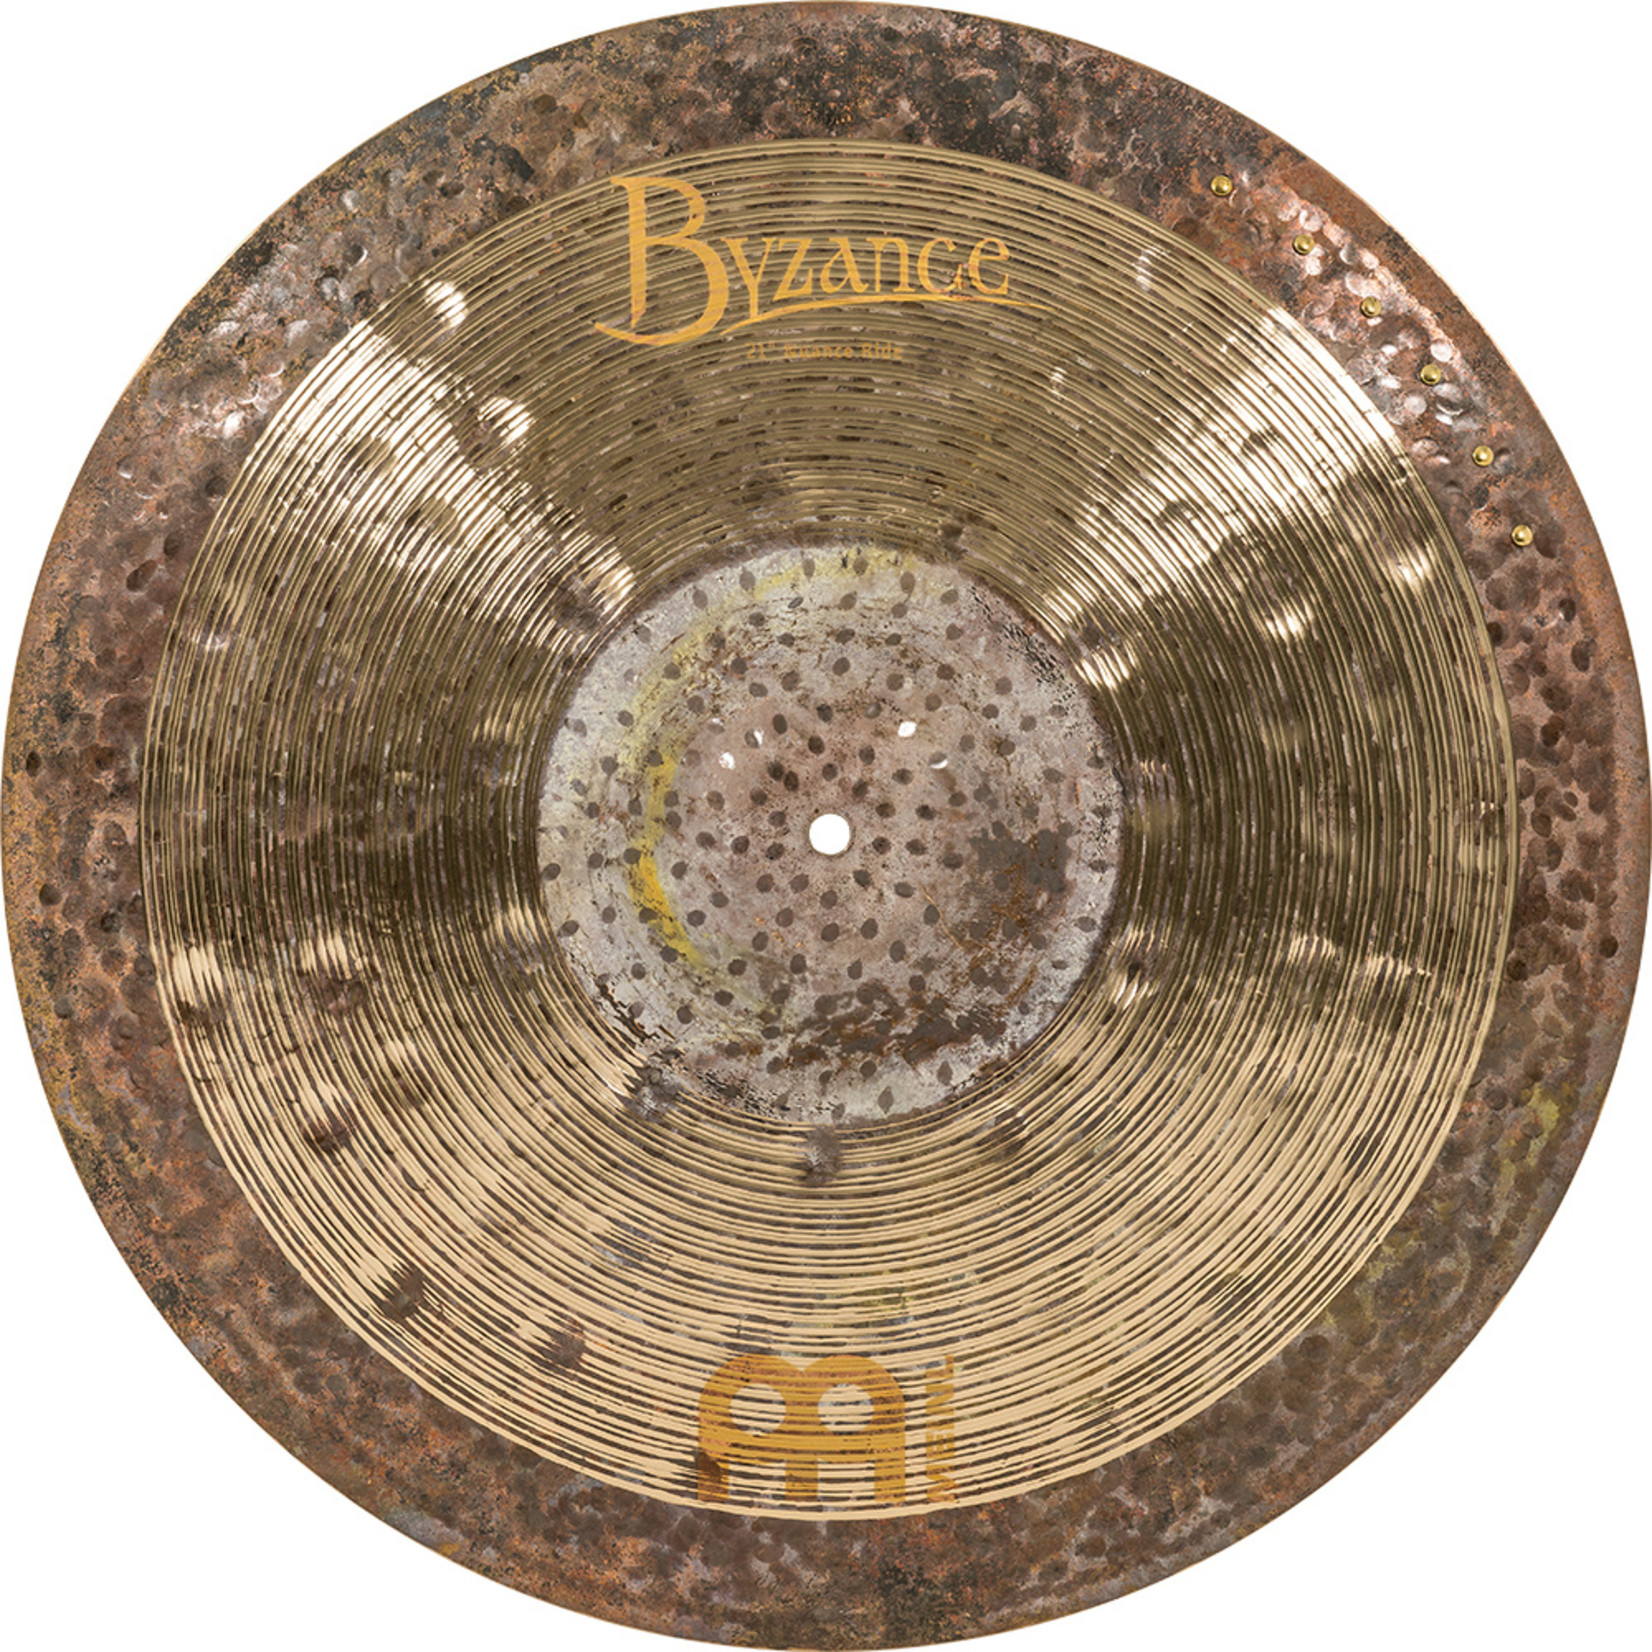 Meinl Meinl Byzance 21'' Nuance Ride with Sizzles